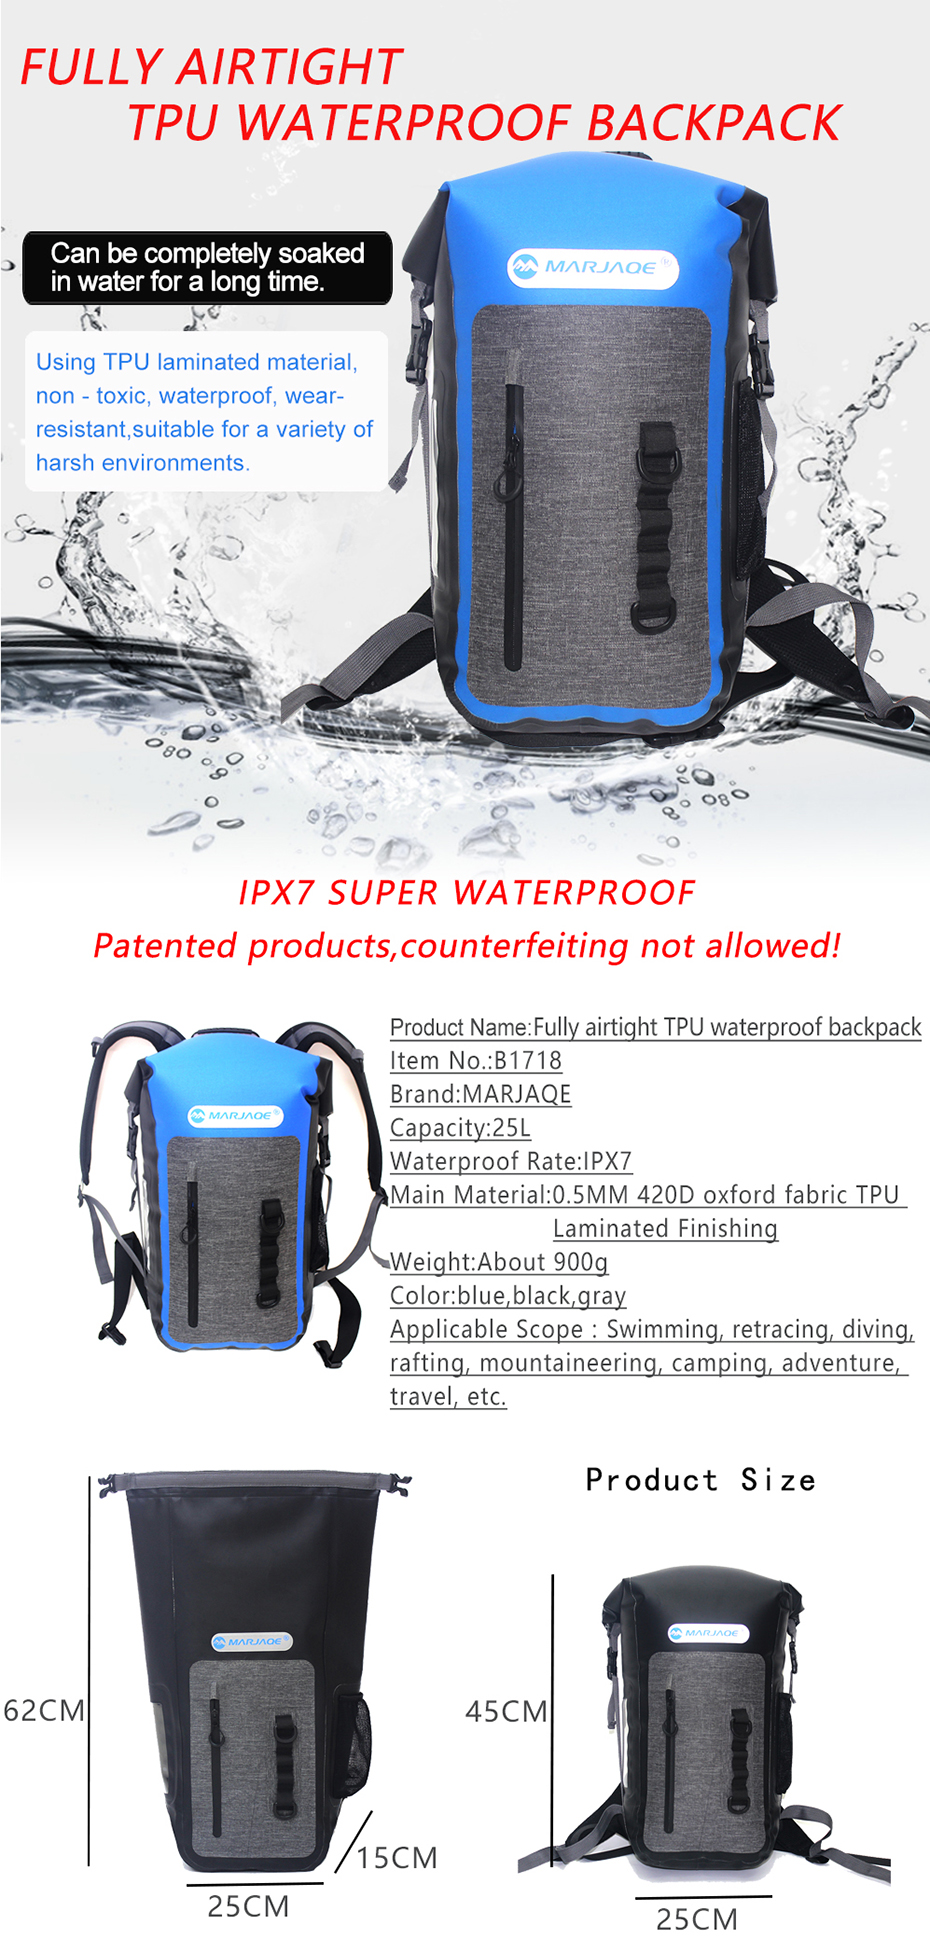 3adac7fd4620 2019 MARJAQE 25L Fully Airtight TPU Waterproof Backpack Outdoor ...